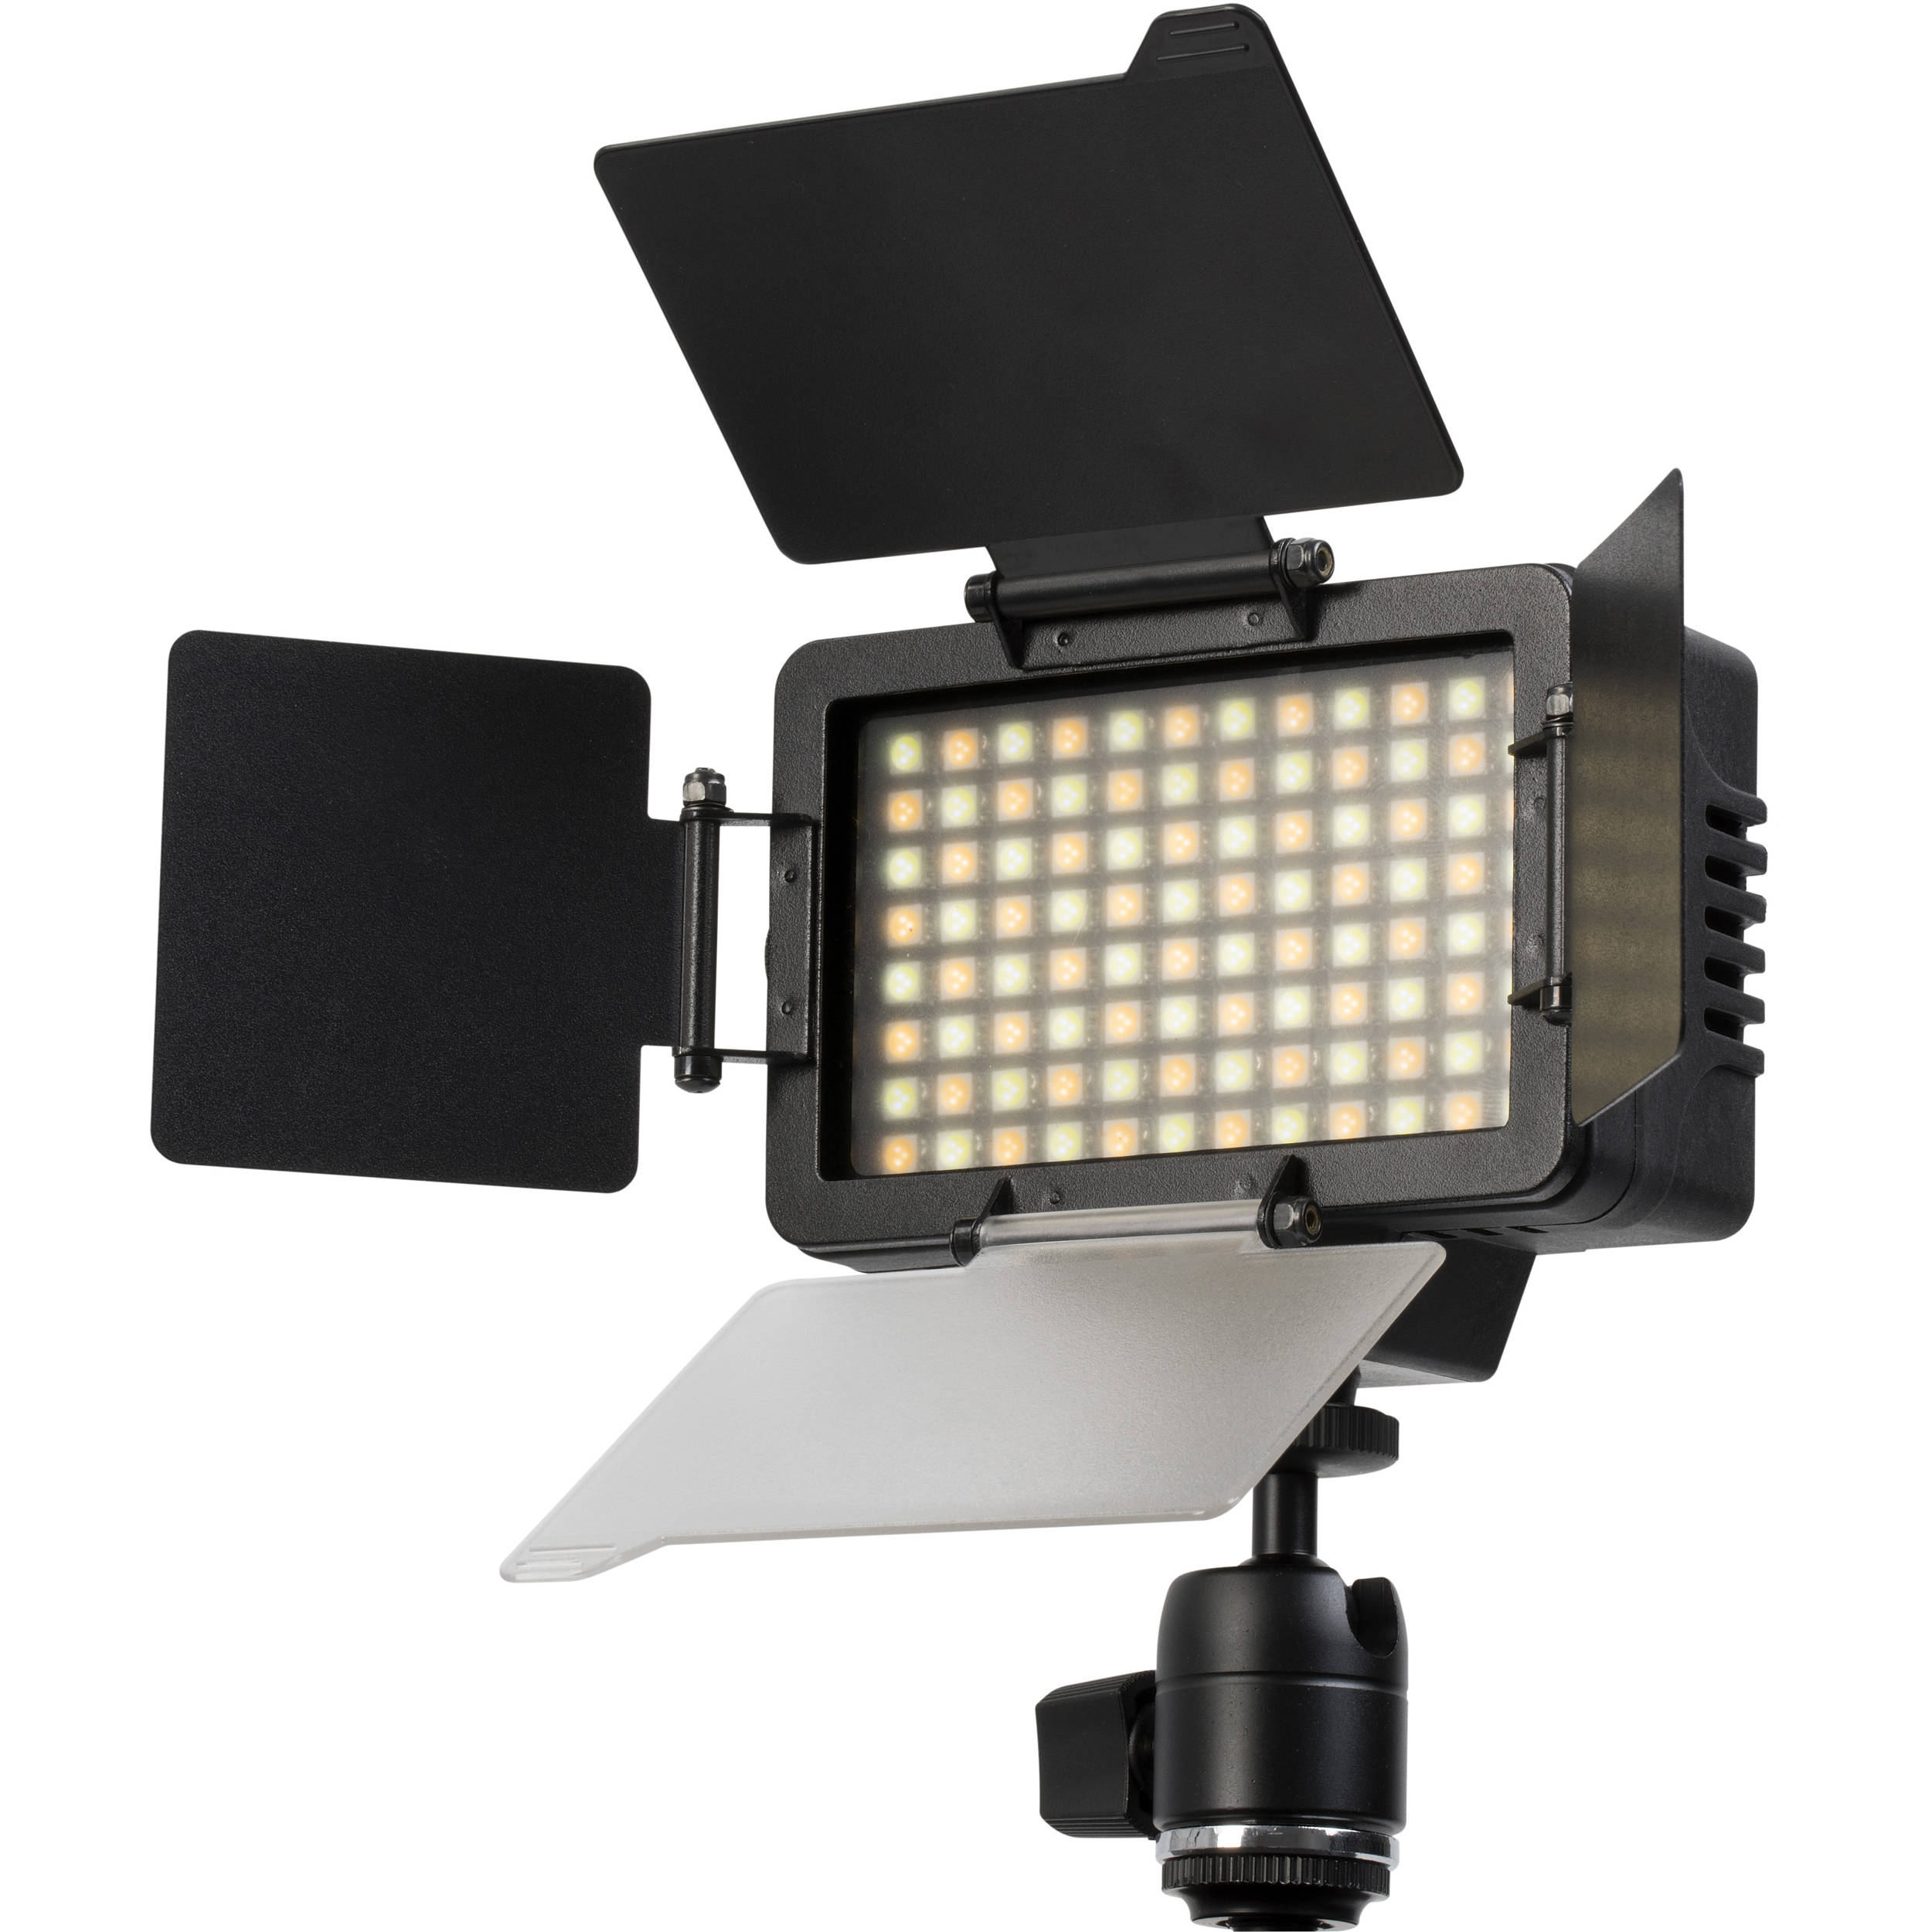 Alphatron Tristar 4 On Camera Bi Color Led Light Alp Tristar 4